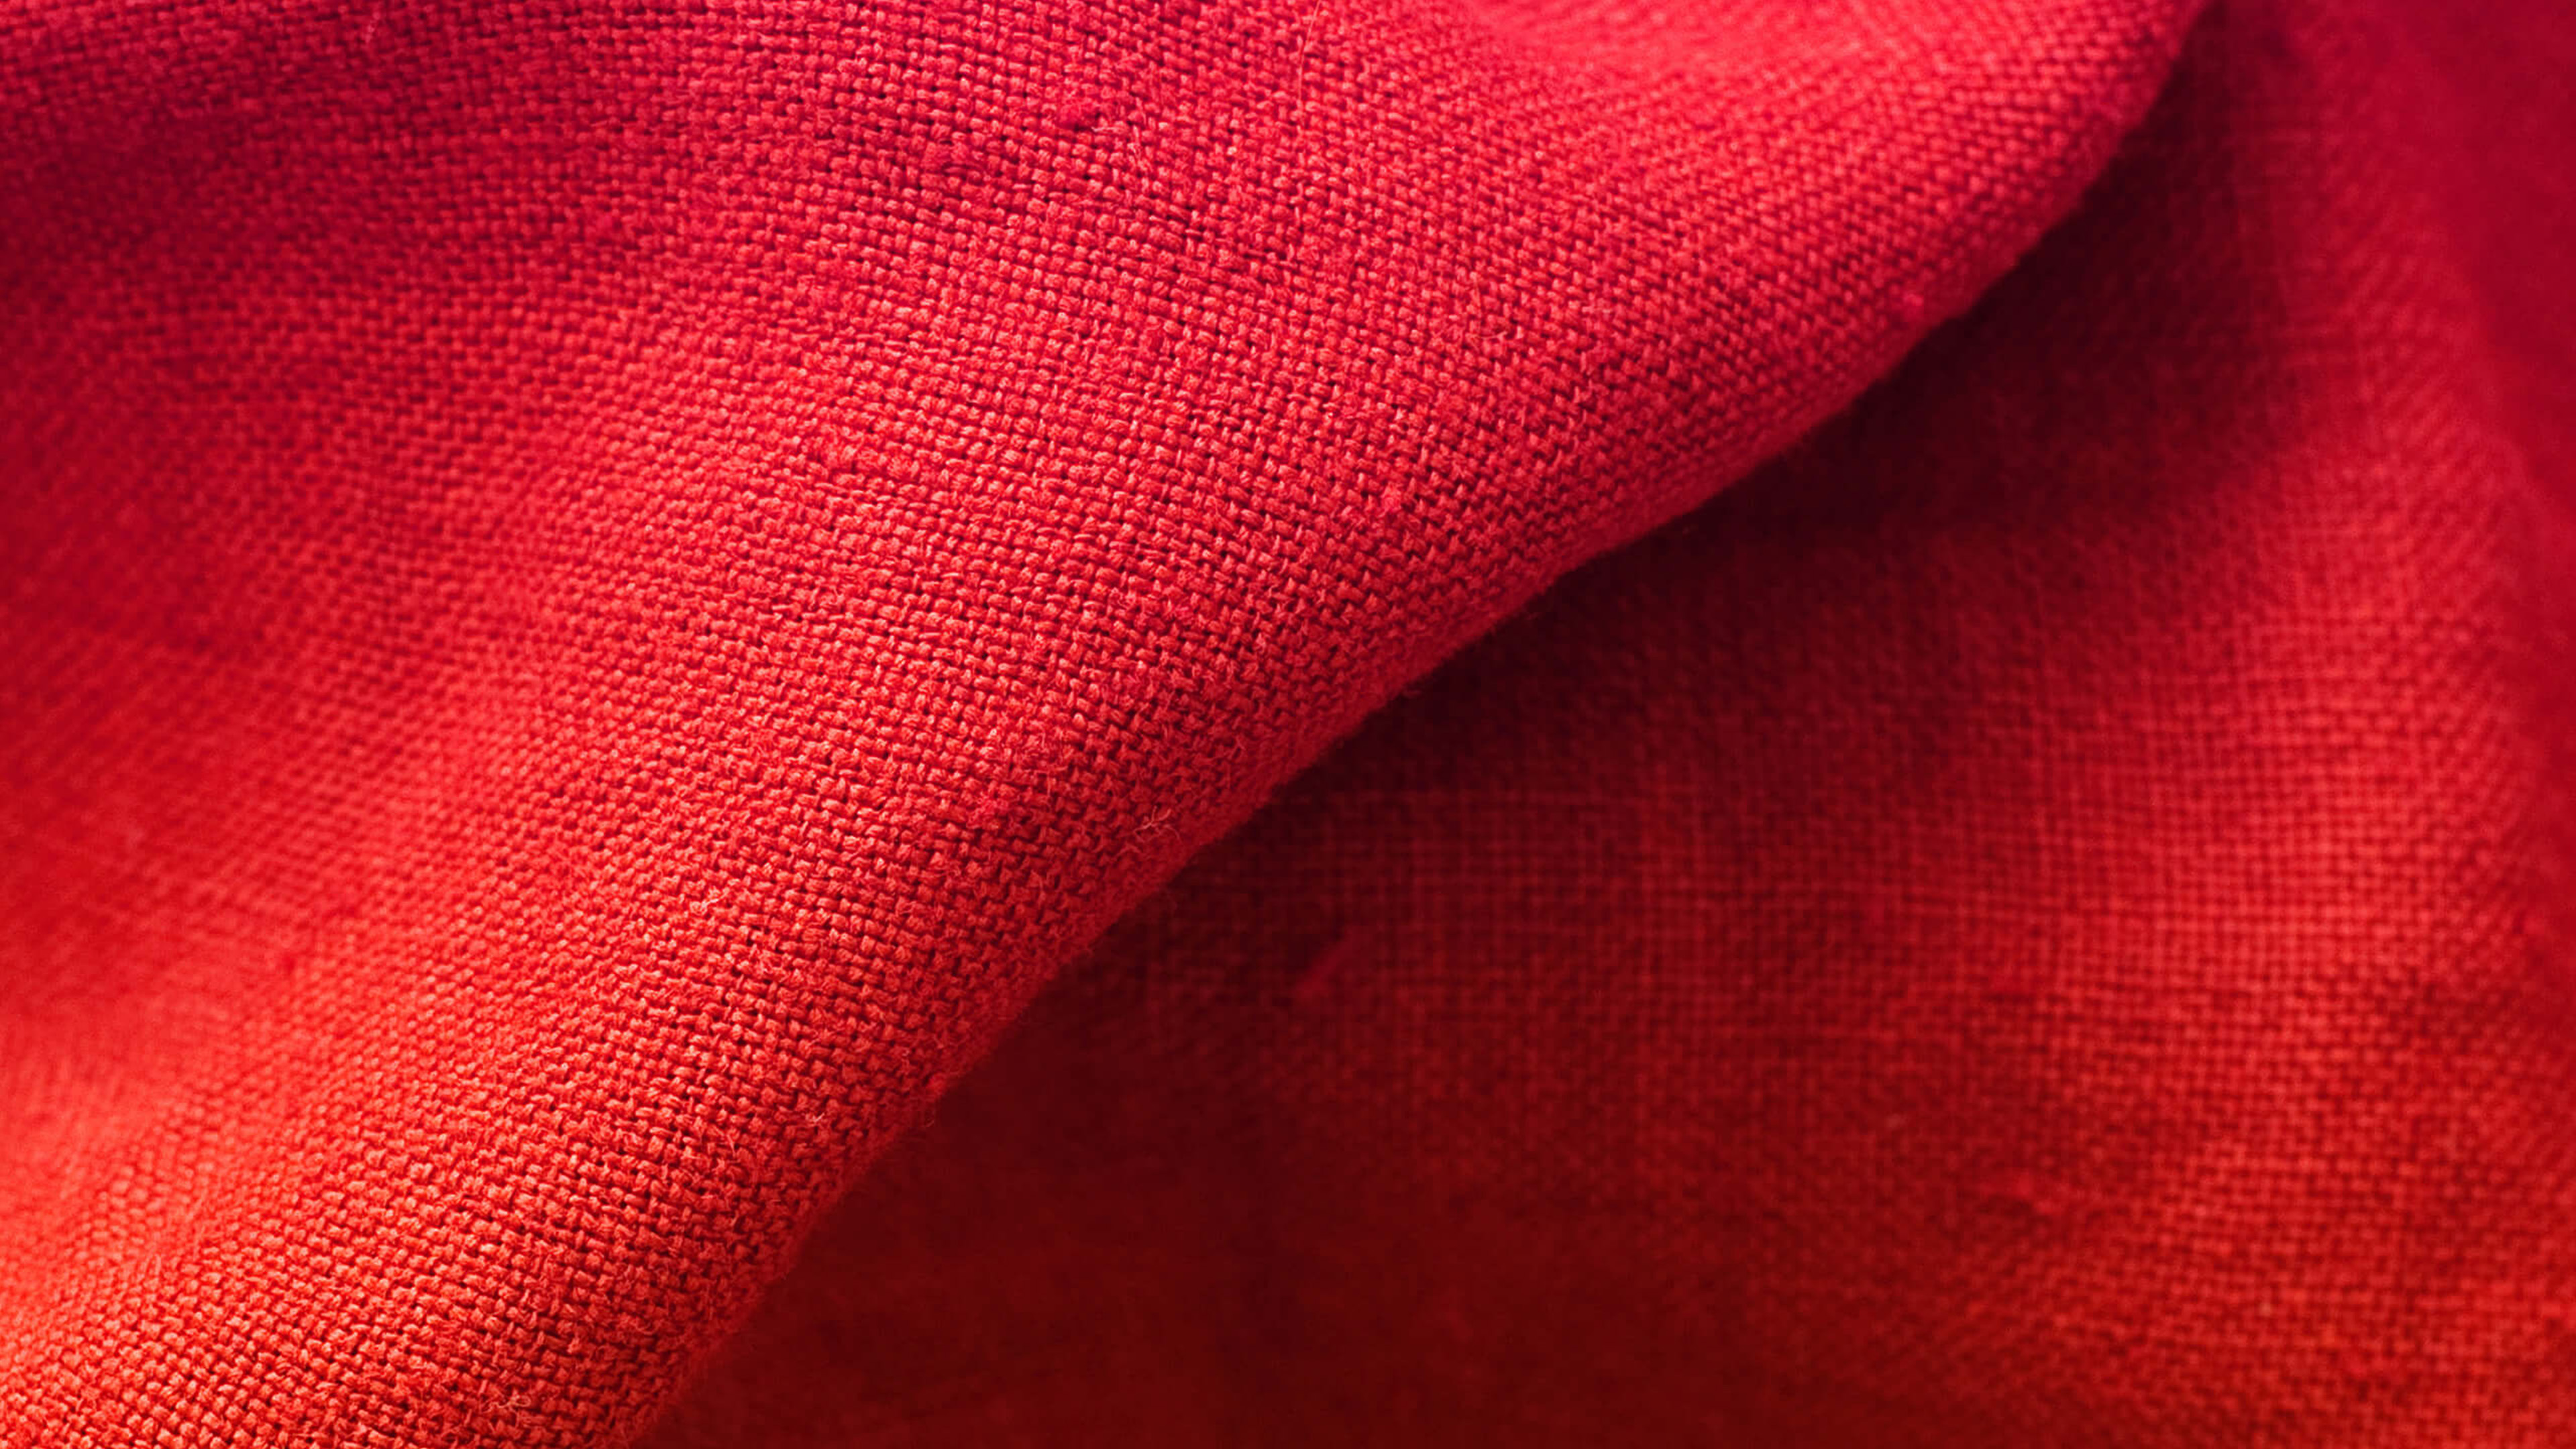 vz41-fabric-red-texture-pattern-background-wallpaper